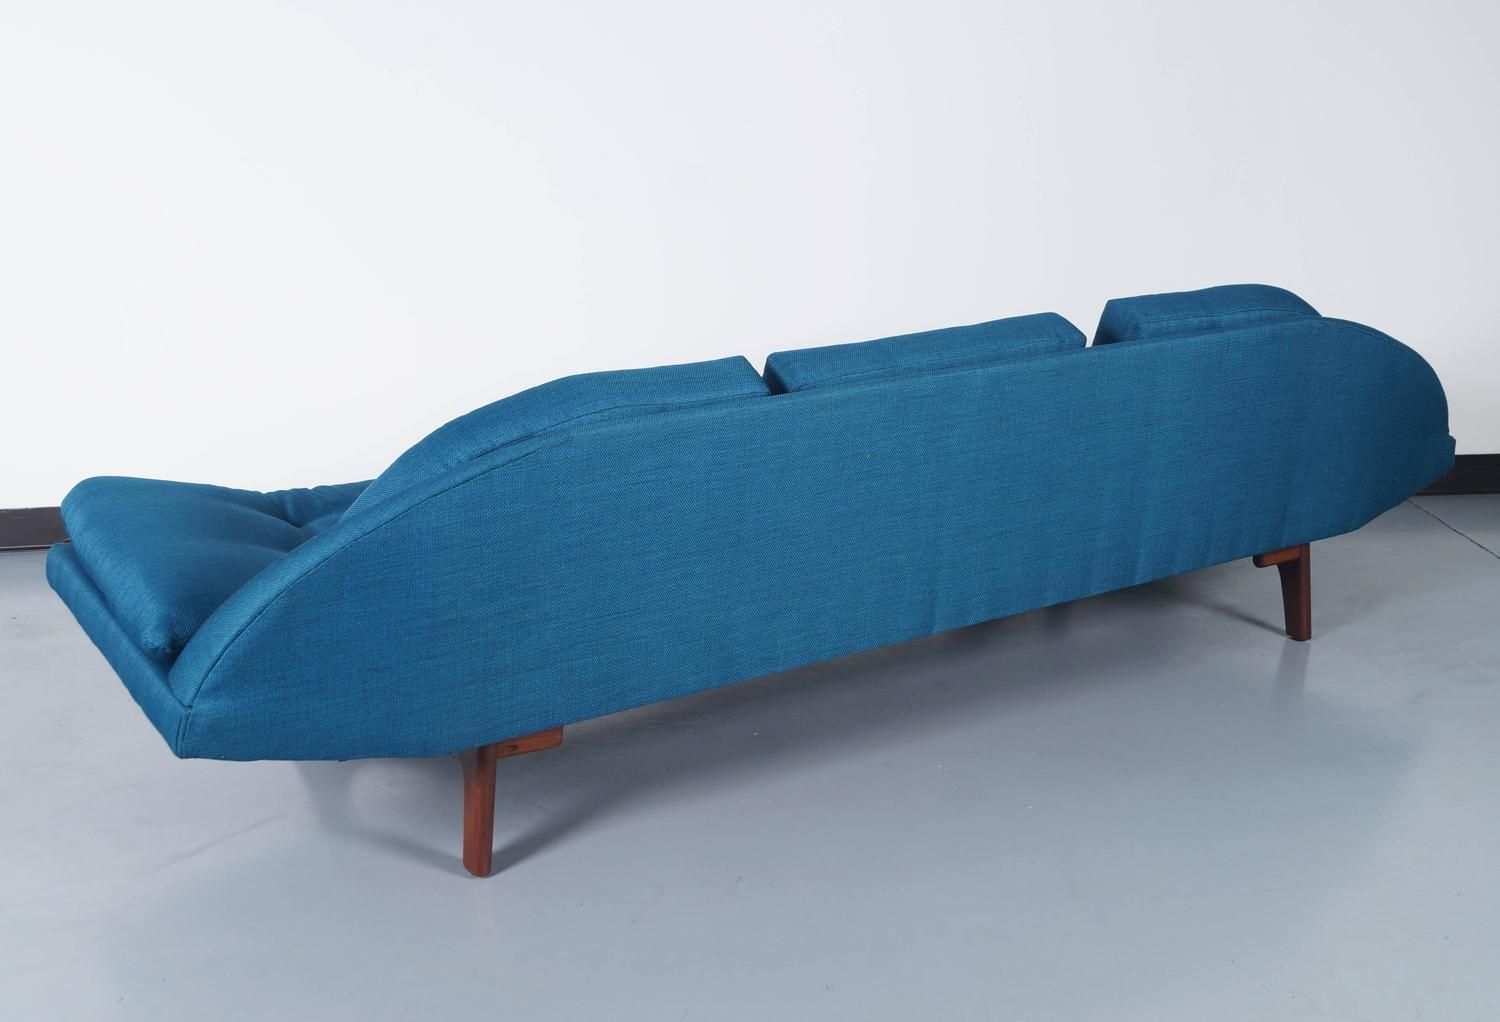 Incredible Adrian Pearsall Gondola Sofa For Craft Associates Pdpeps Interior Chair Design Pdpepsorg